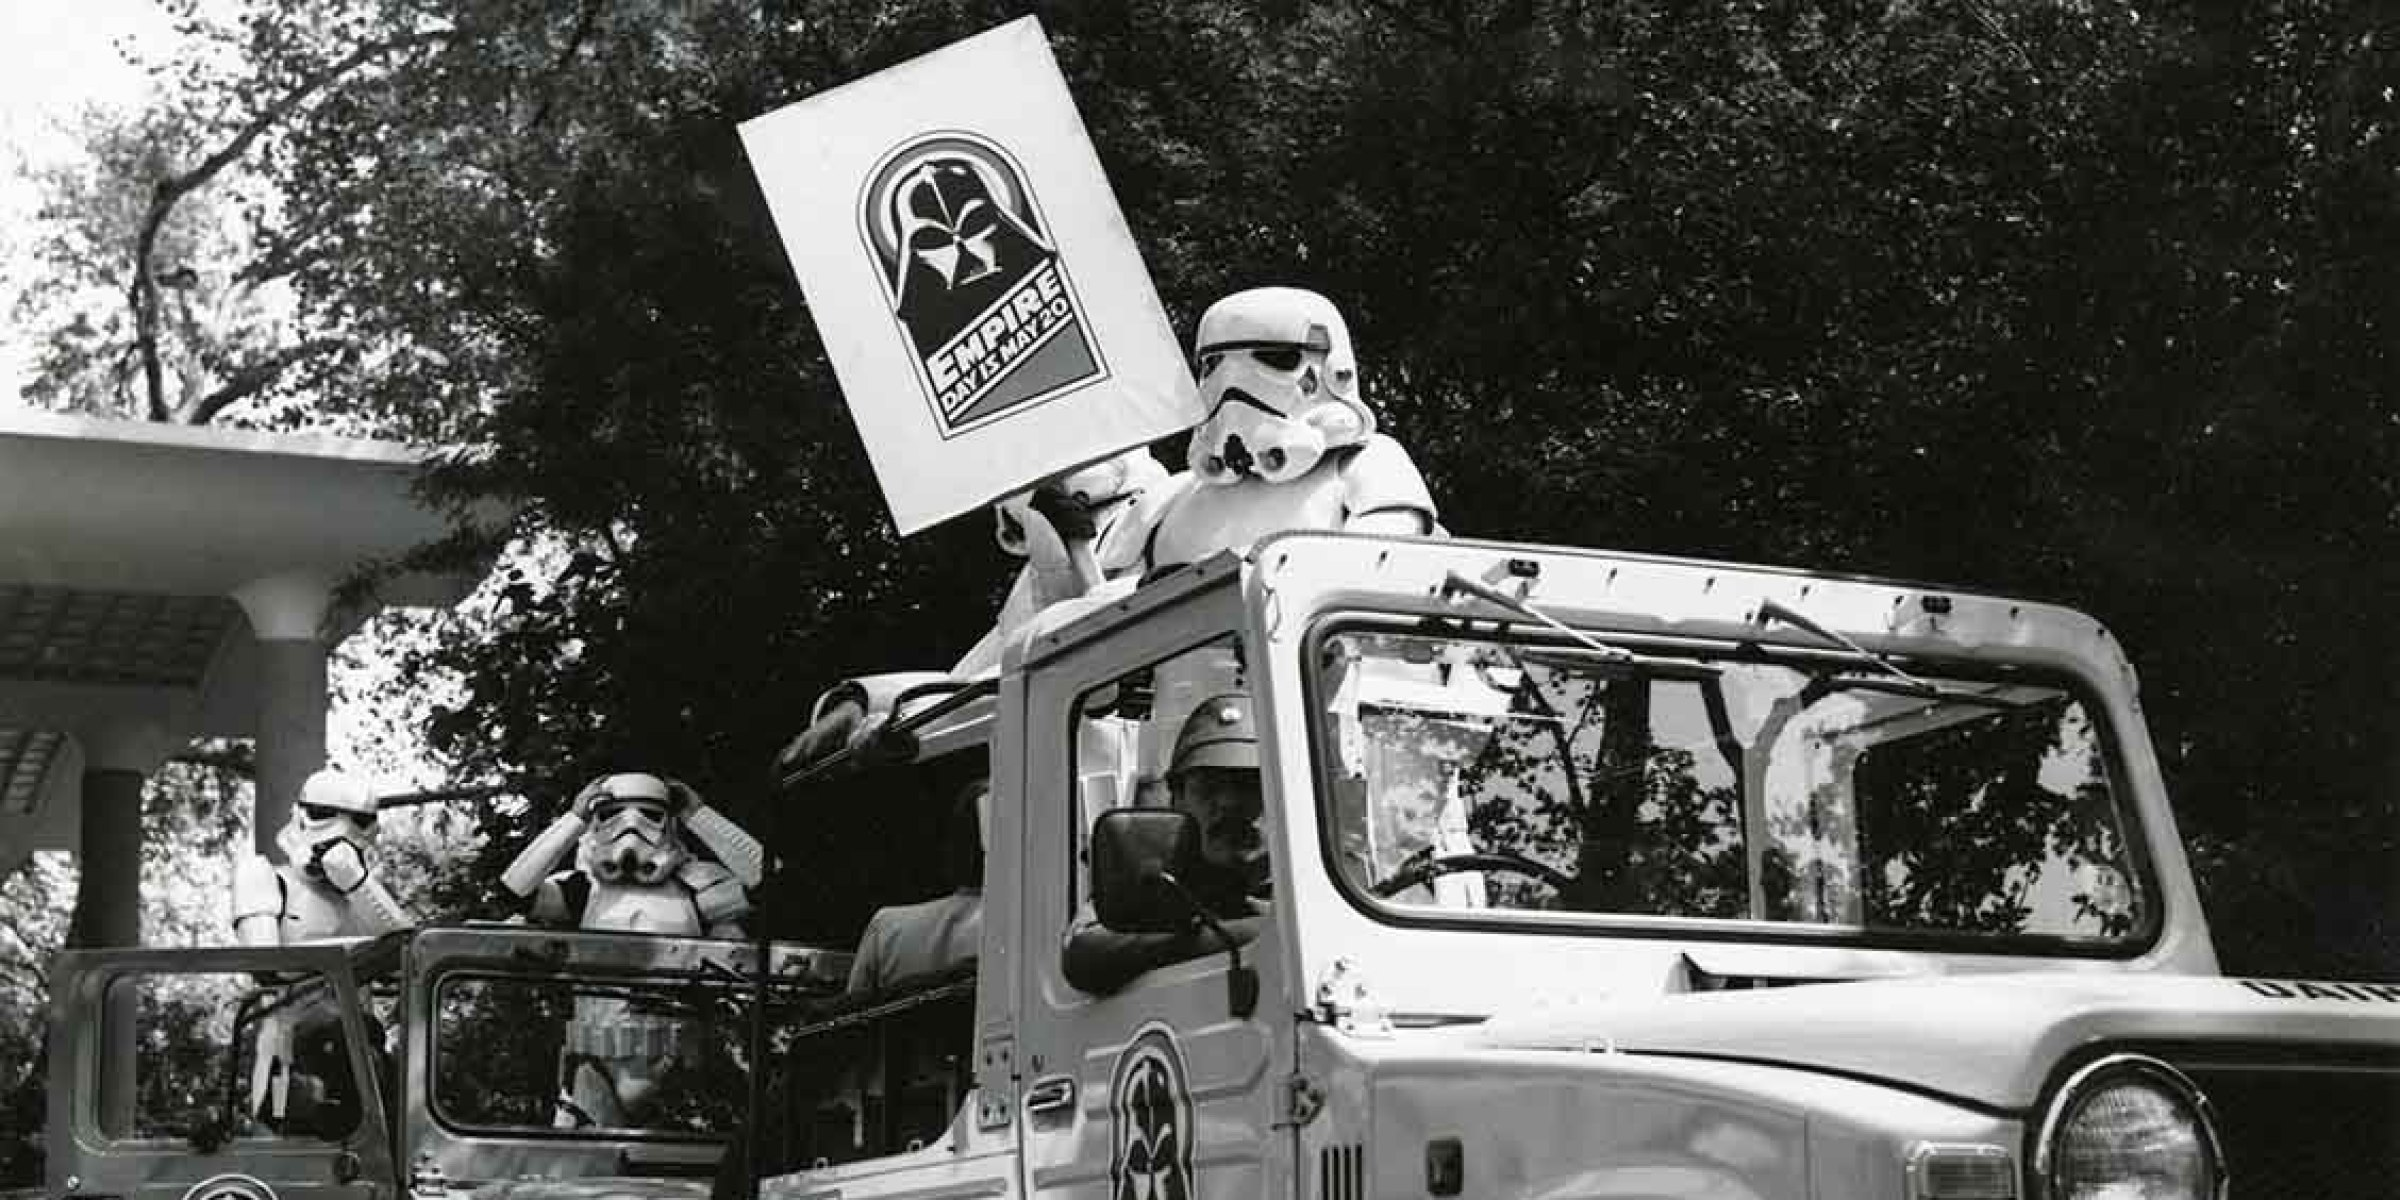 Jeeps hauling a legion of Stormtroopers must have been quite a site for Londoners during the premiere of The Empire Strikes Back in 1980